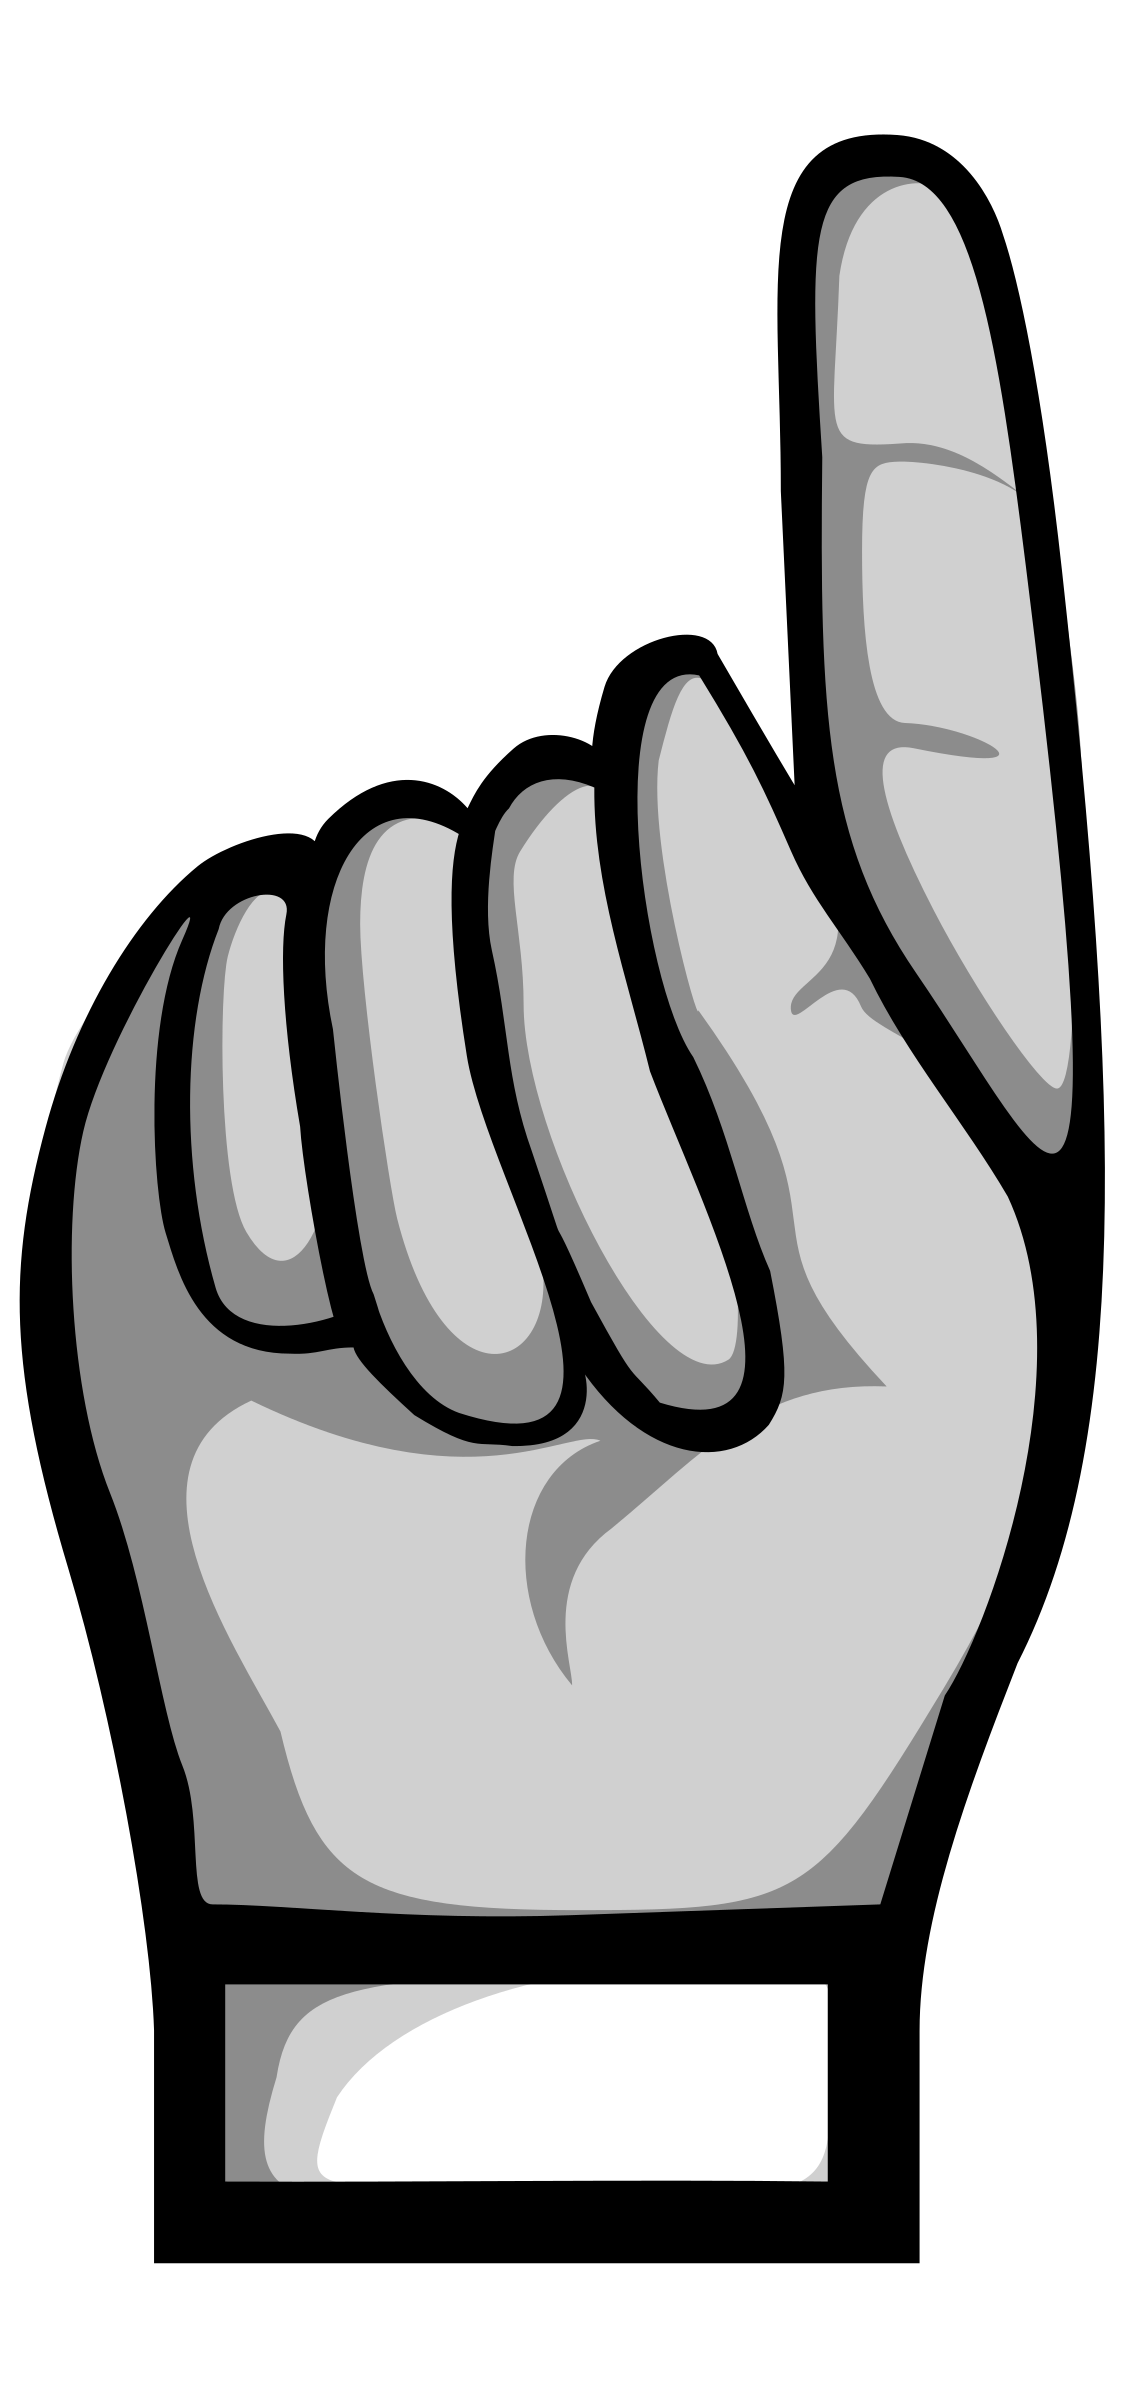 Up black and white. Hands clipart muscular